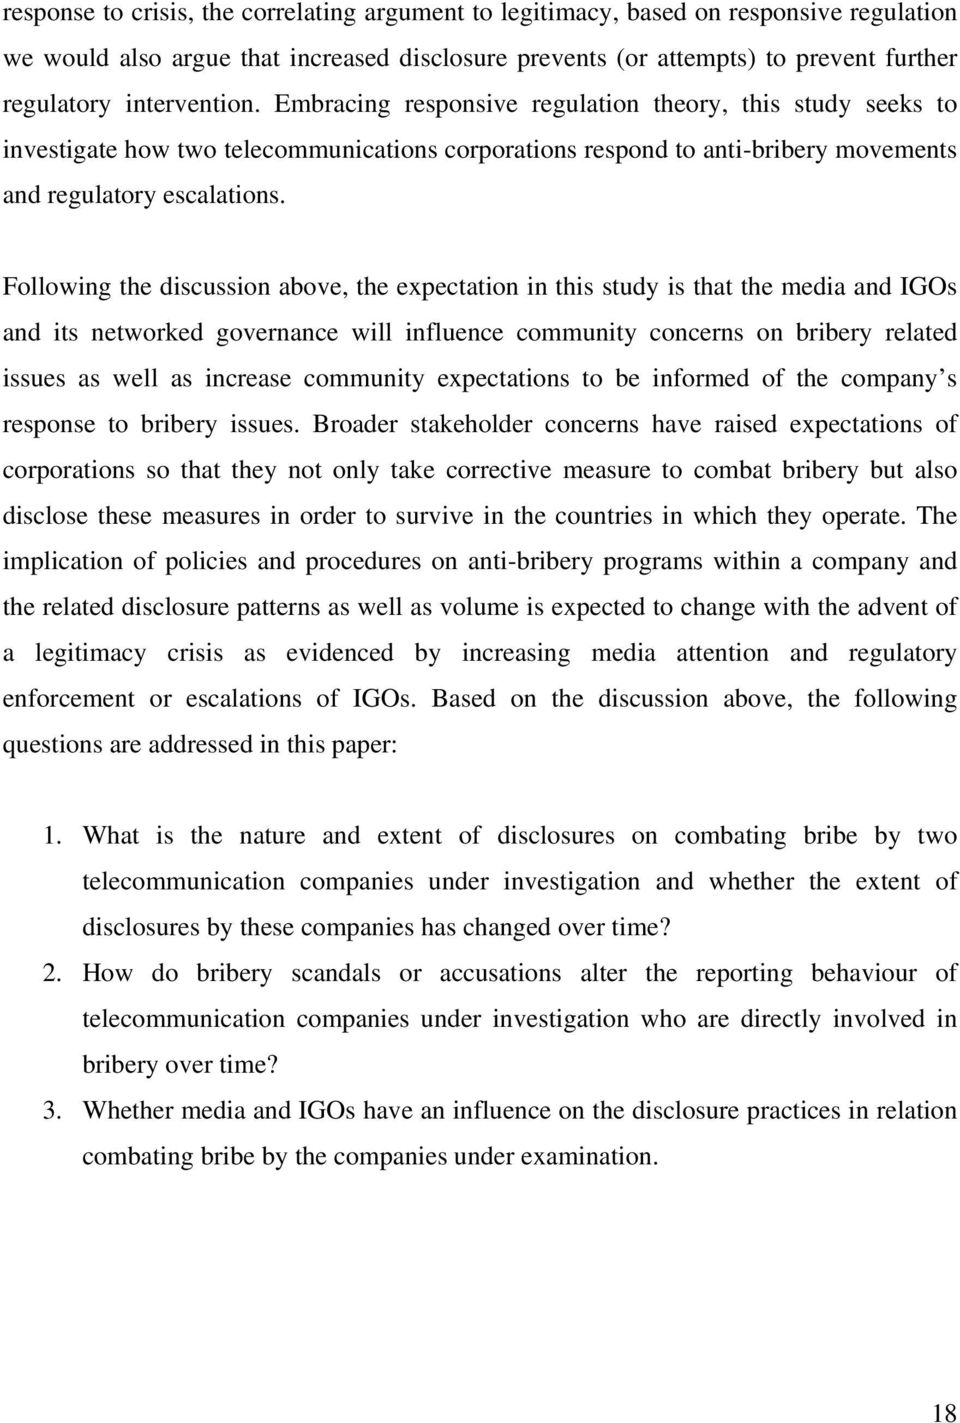 Following the discussion above, the expectation in this study is that the media and IGOs and its networked governance will influence community concerns on bribery related issues as well as increase